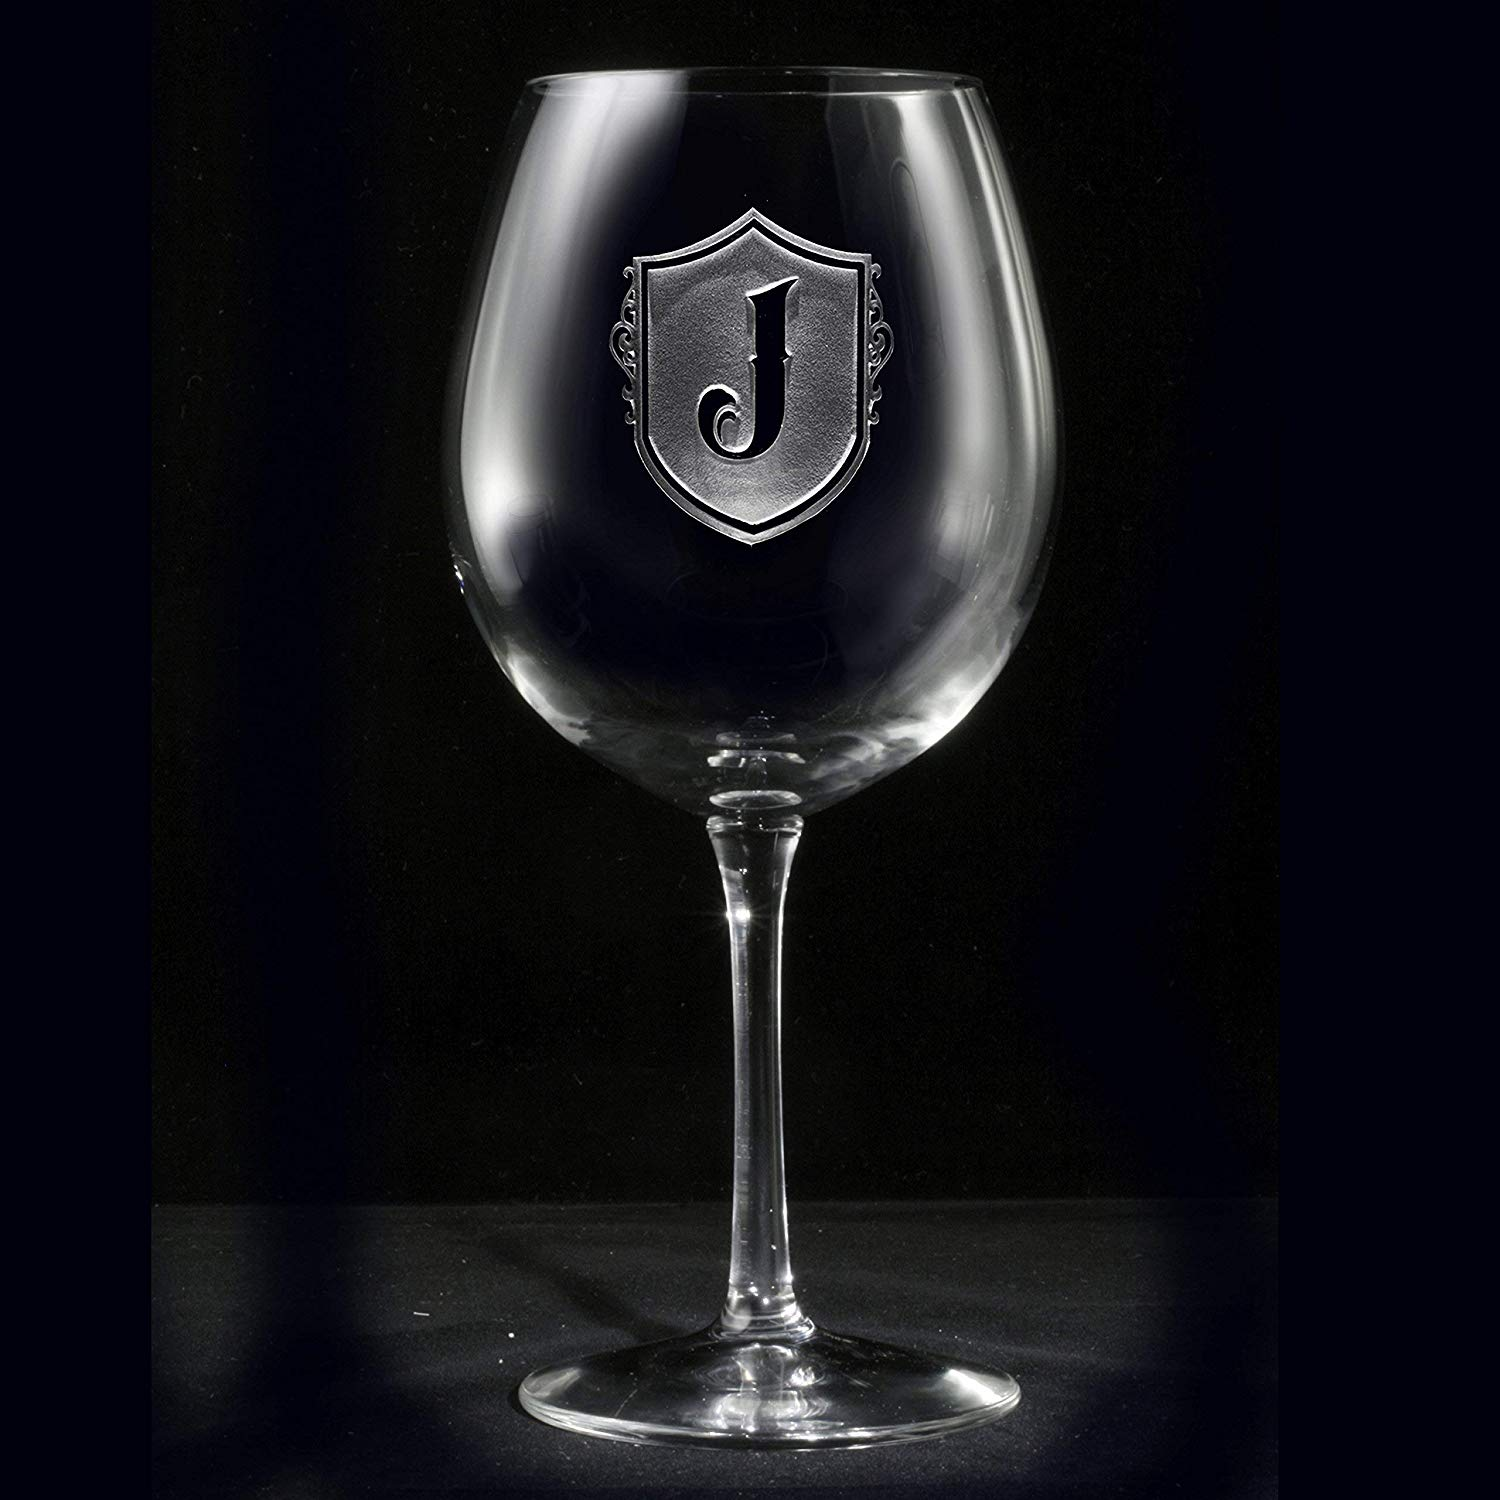 78d9a15a9eb Material Polyester. men... Get Quotations · Etched Monogrammed Shield Red  Wine Glass - One Glass (m22)